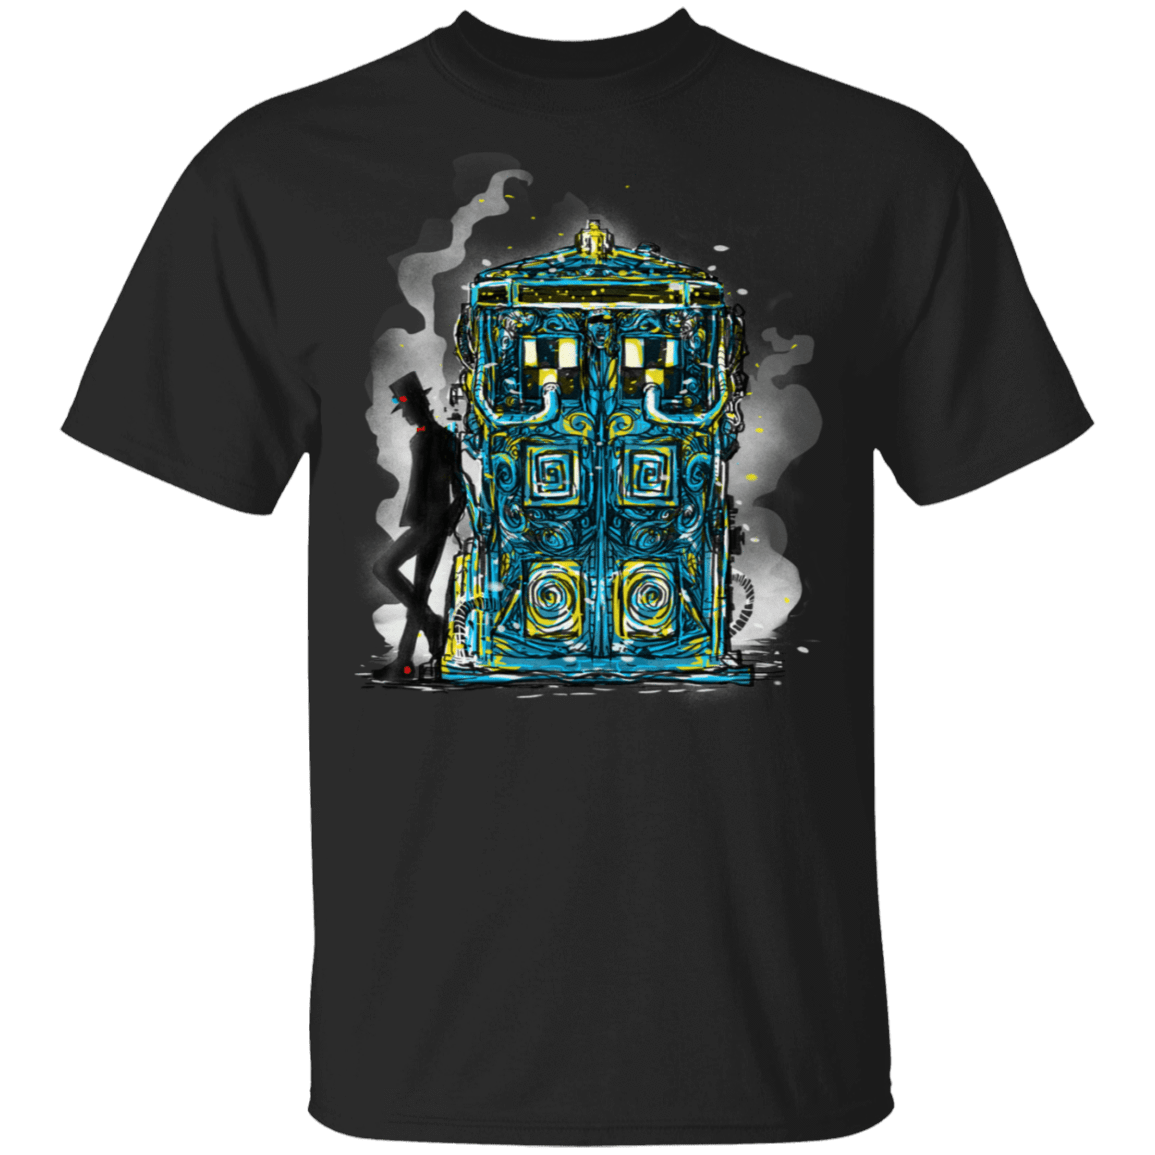 The Steam Doctor T-Shirt